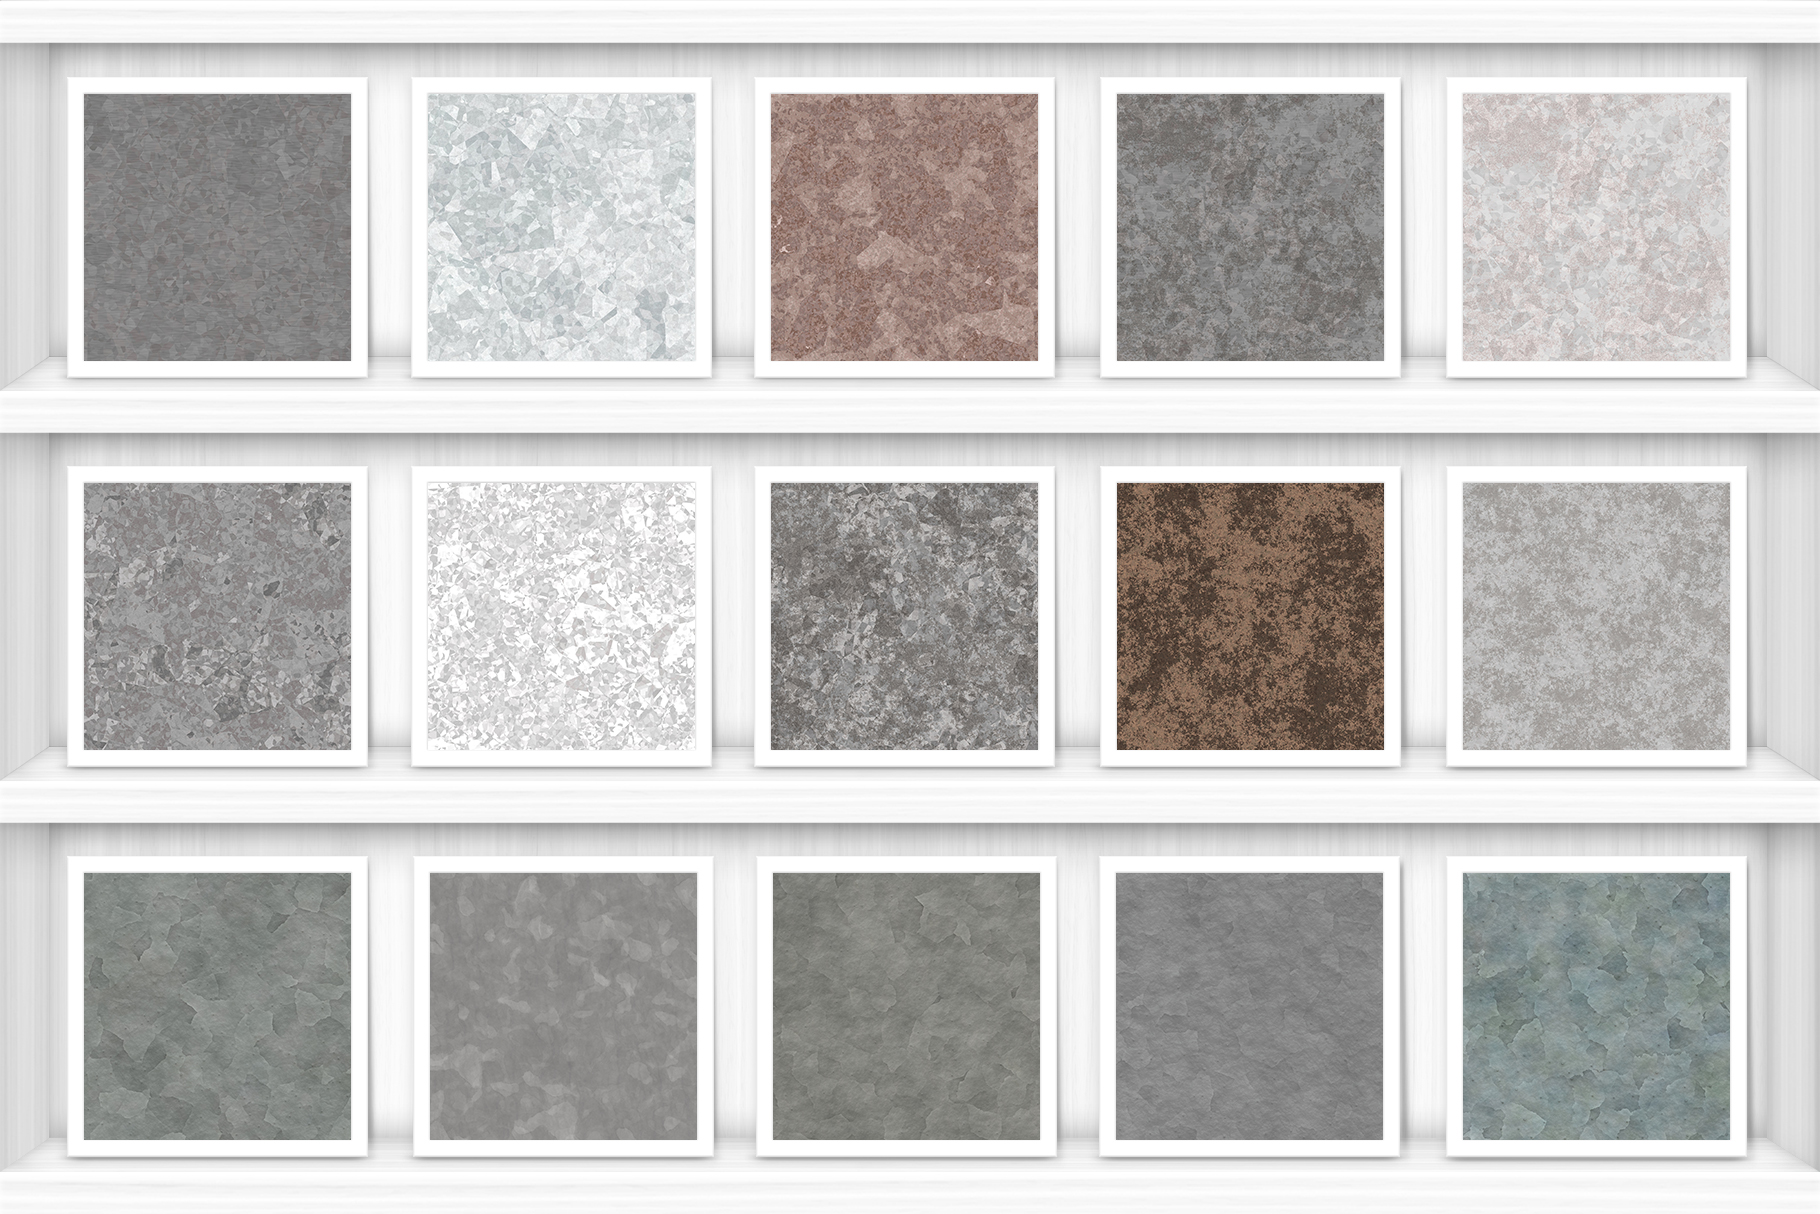 20 Galvanized Metal Background Textures Samples Book Shelves Preview Set